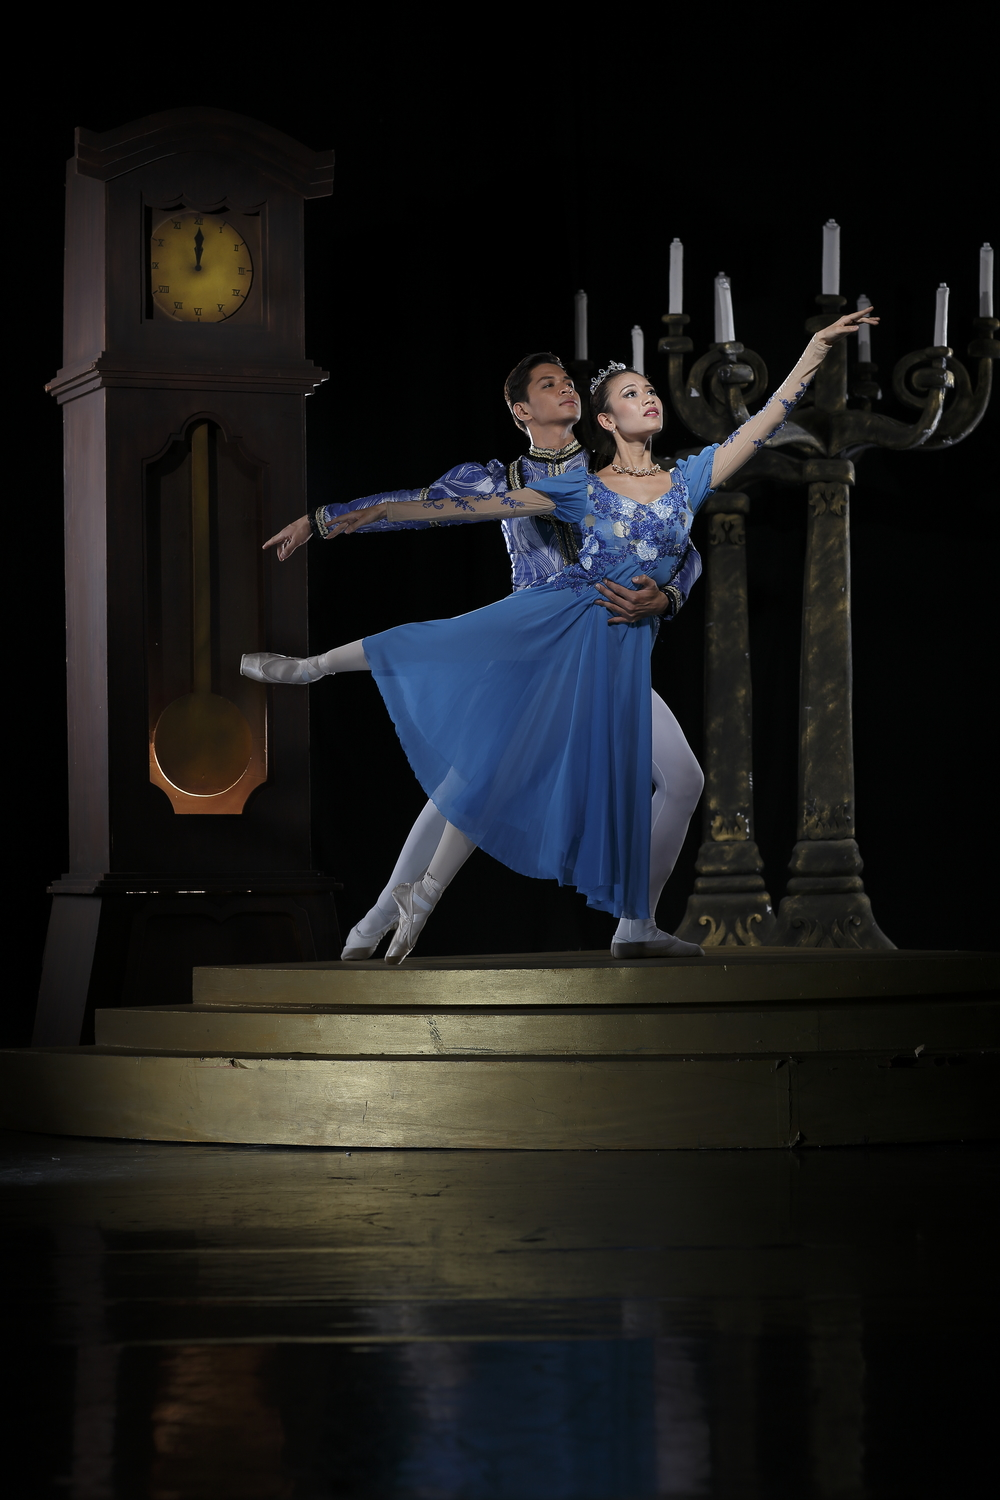 The beloved children's fairy tale,    Cinderella   , is set to delight ballet fans of all ages during the holiday season. In the lead roles are soloists Abigail Oliveiro and Mark Sumaylo.